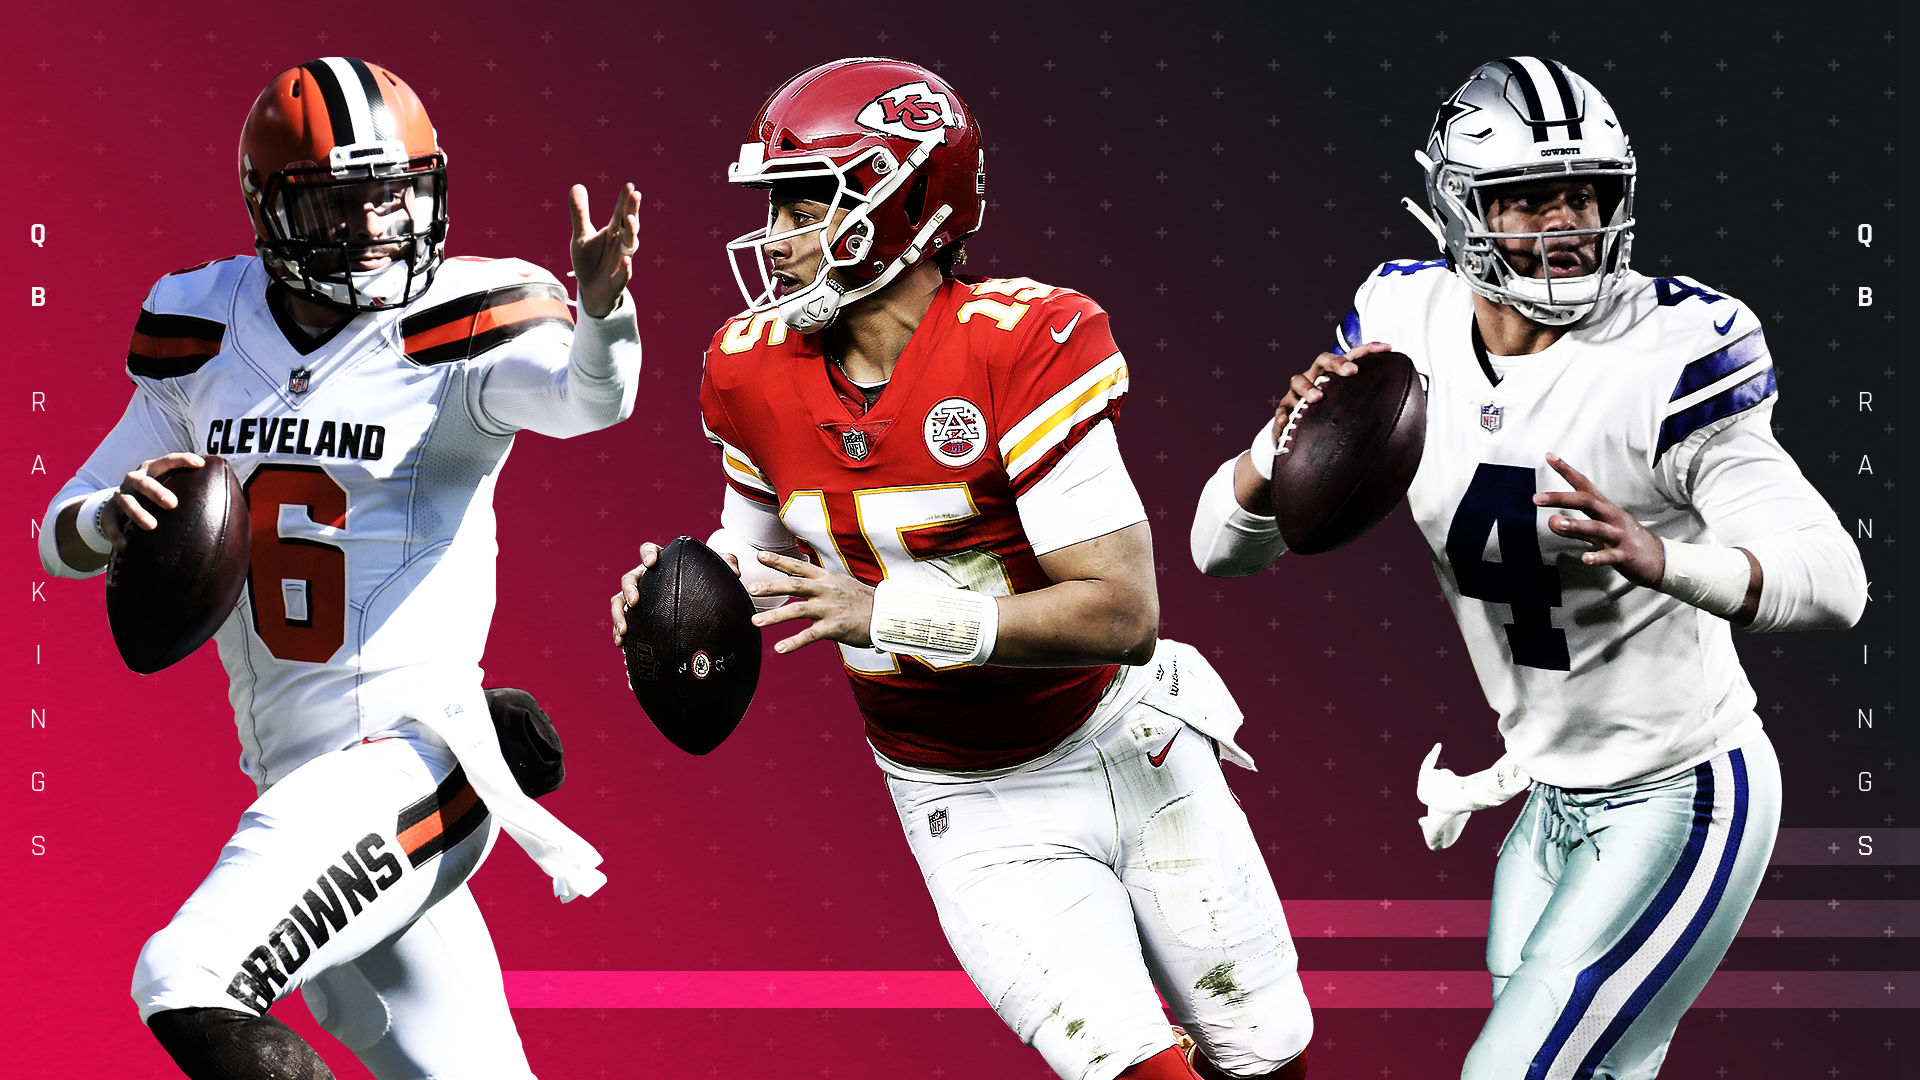 Best Qb Fantasy 2020.Nfl Quarterback Rankings For 2019 Best To Worst 1 32